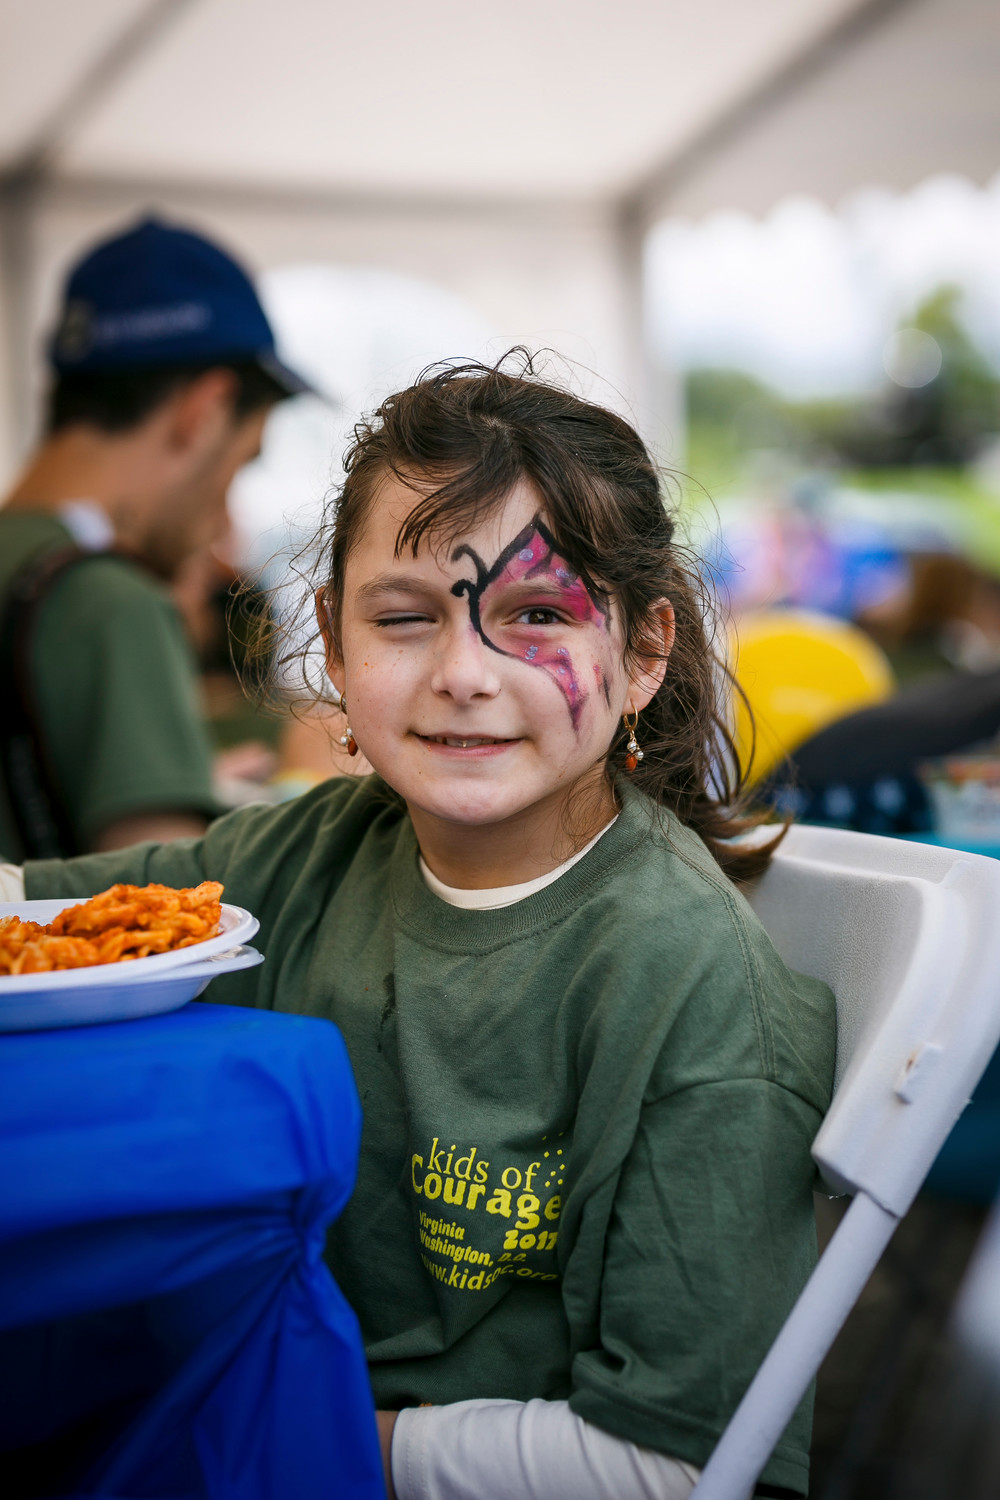 Brooklyn resident Faigy, one of the Kids of Courage campers, relaxed with a meal after having one side of her face painted.